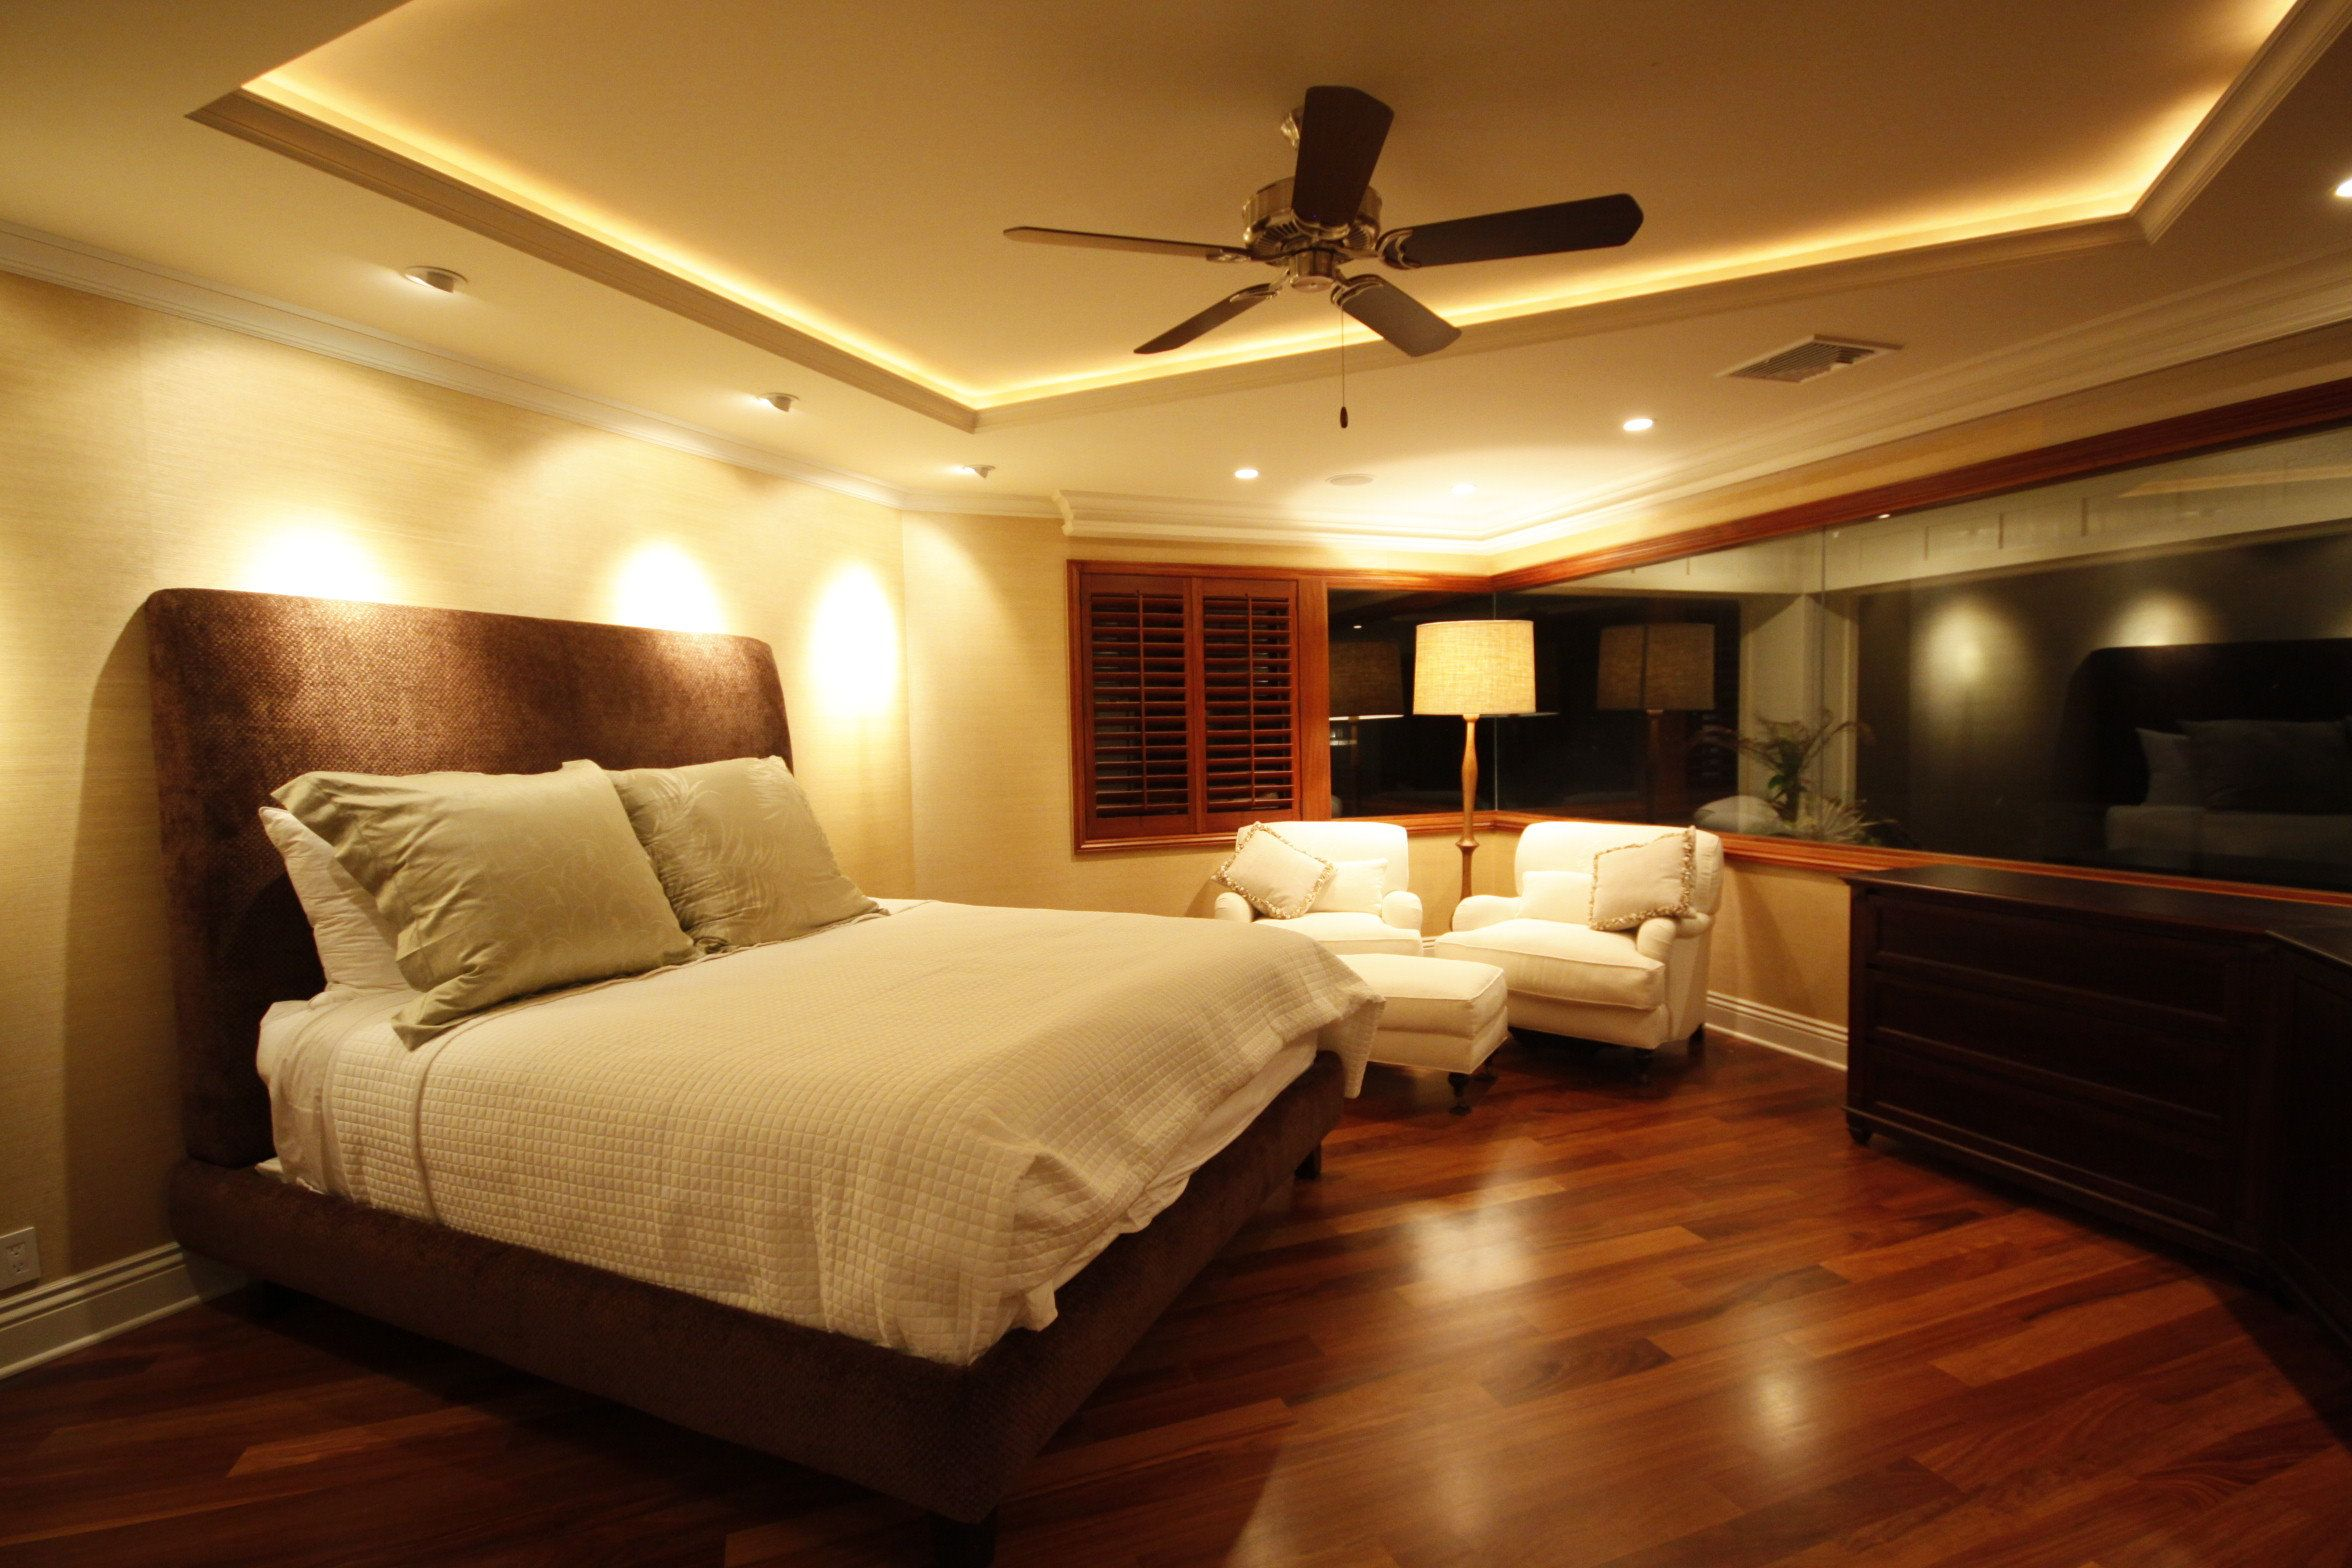 Appealing master bedroom modern decor with wooden floors for Pics of luxury bedrooms